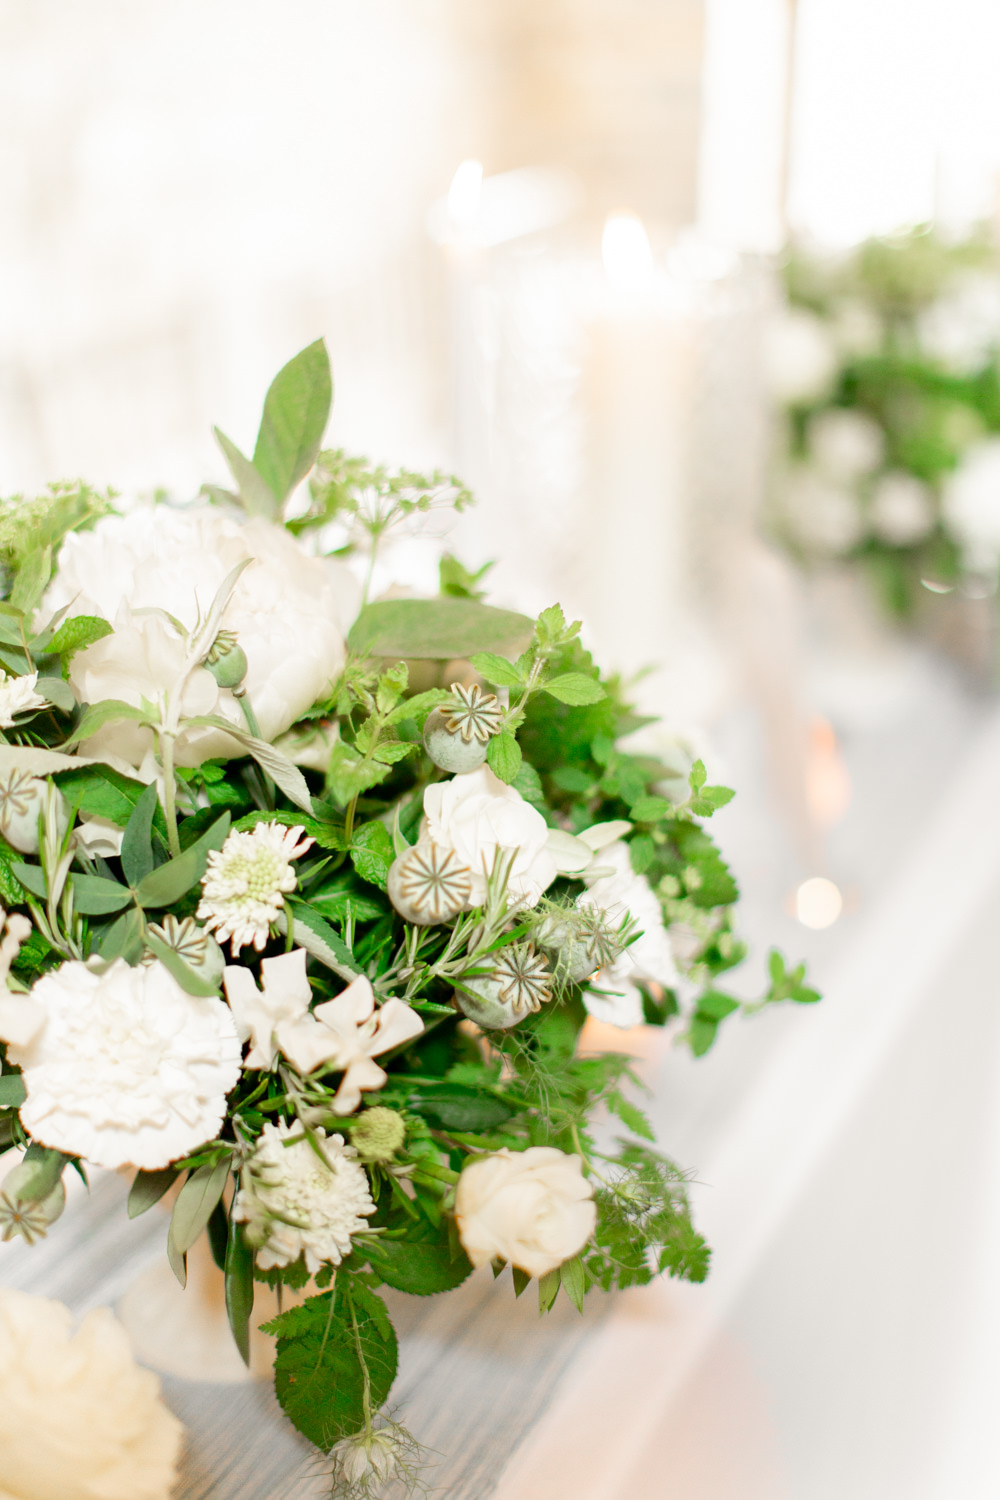 Table Flowers Centrepiece Rose Greenery Almonry Barn Wedding Kerry Bartlett Photography